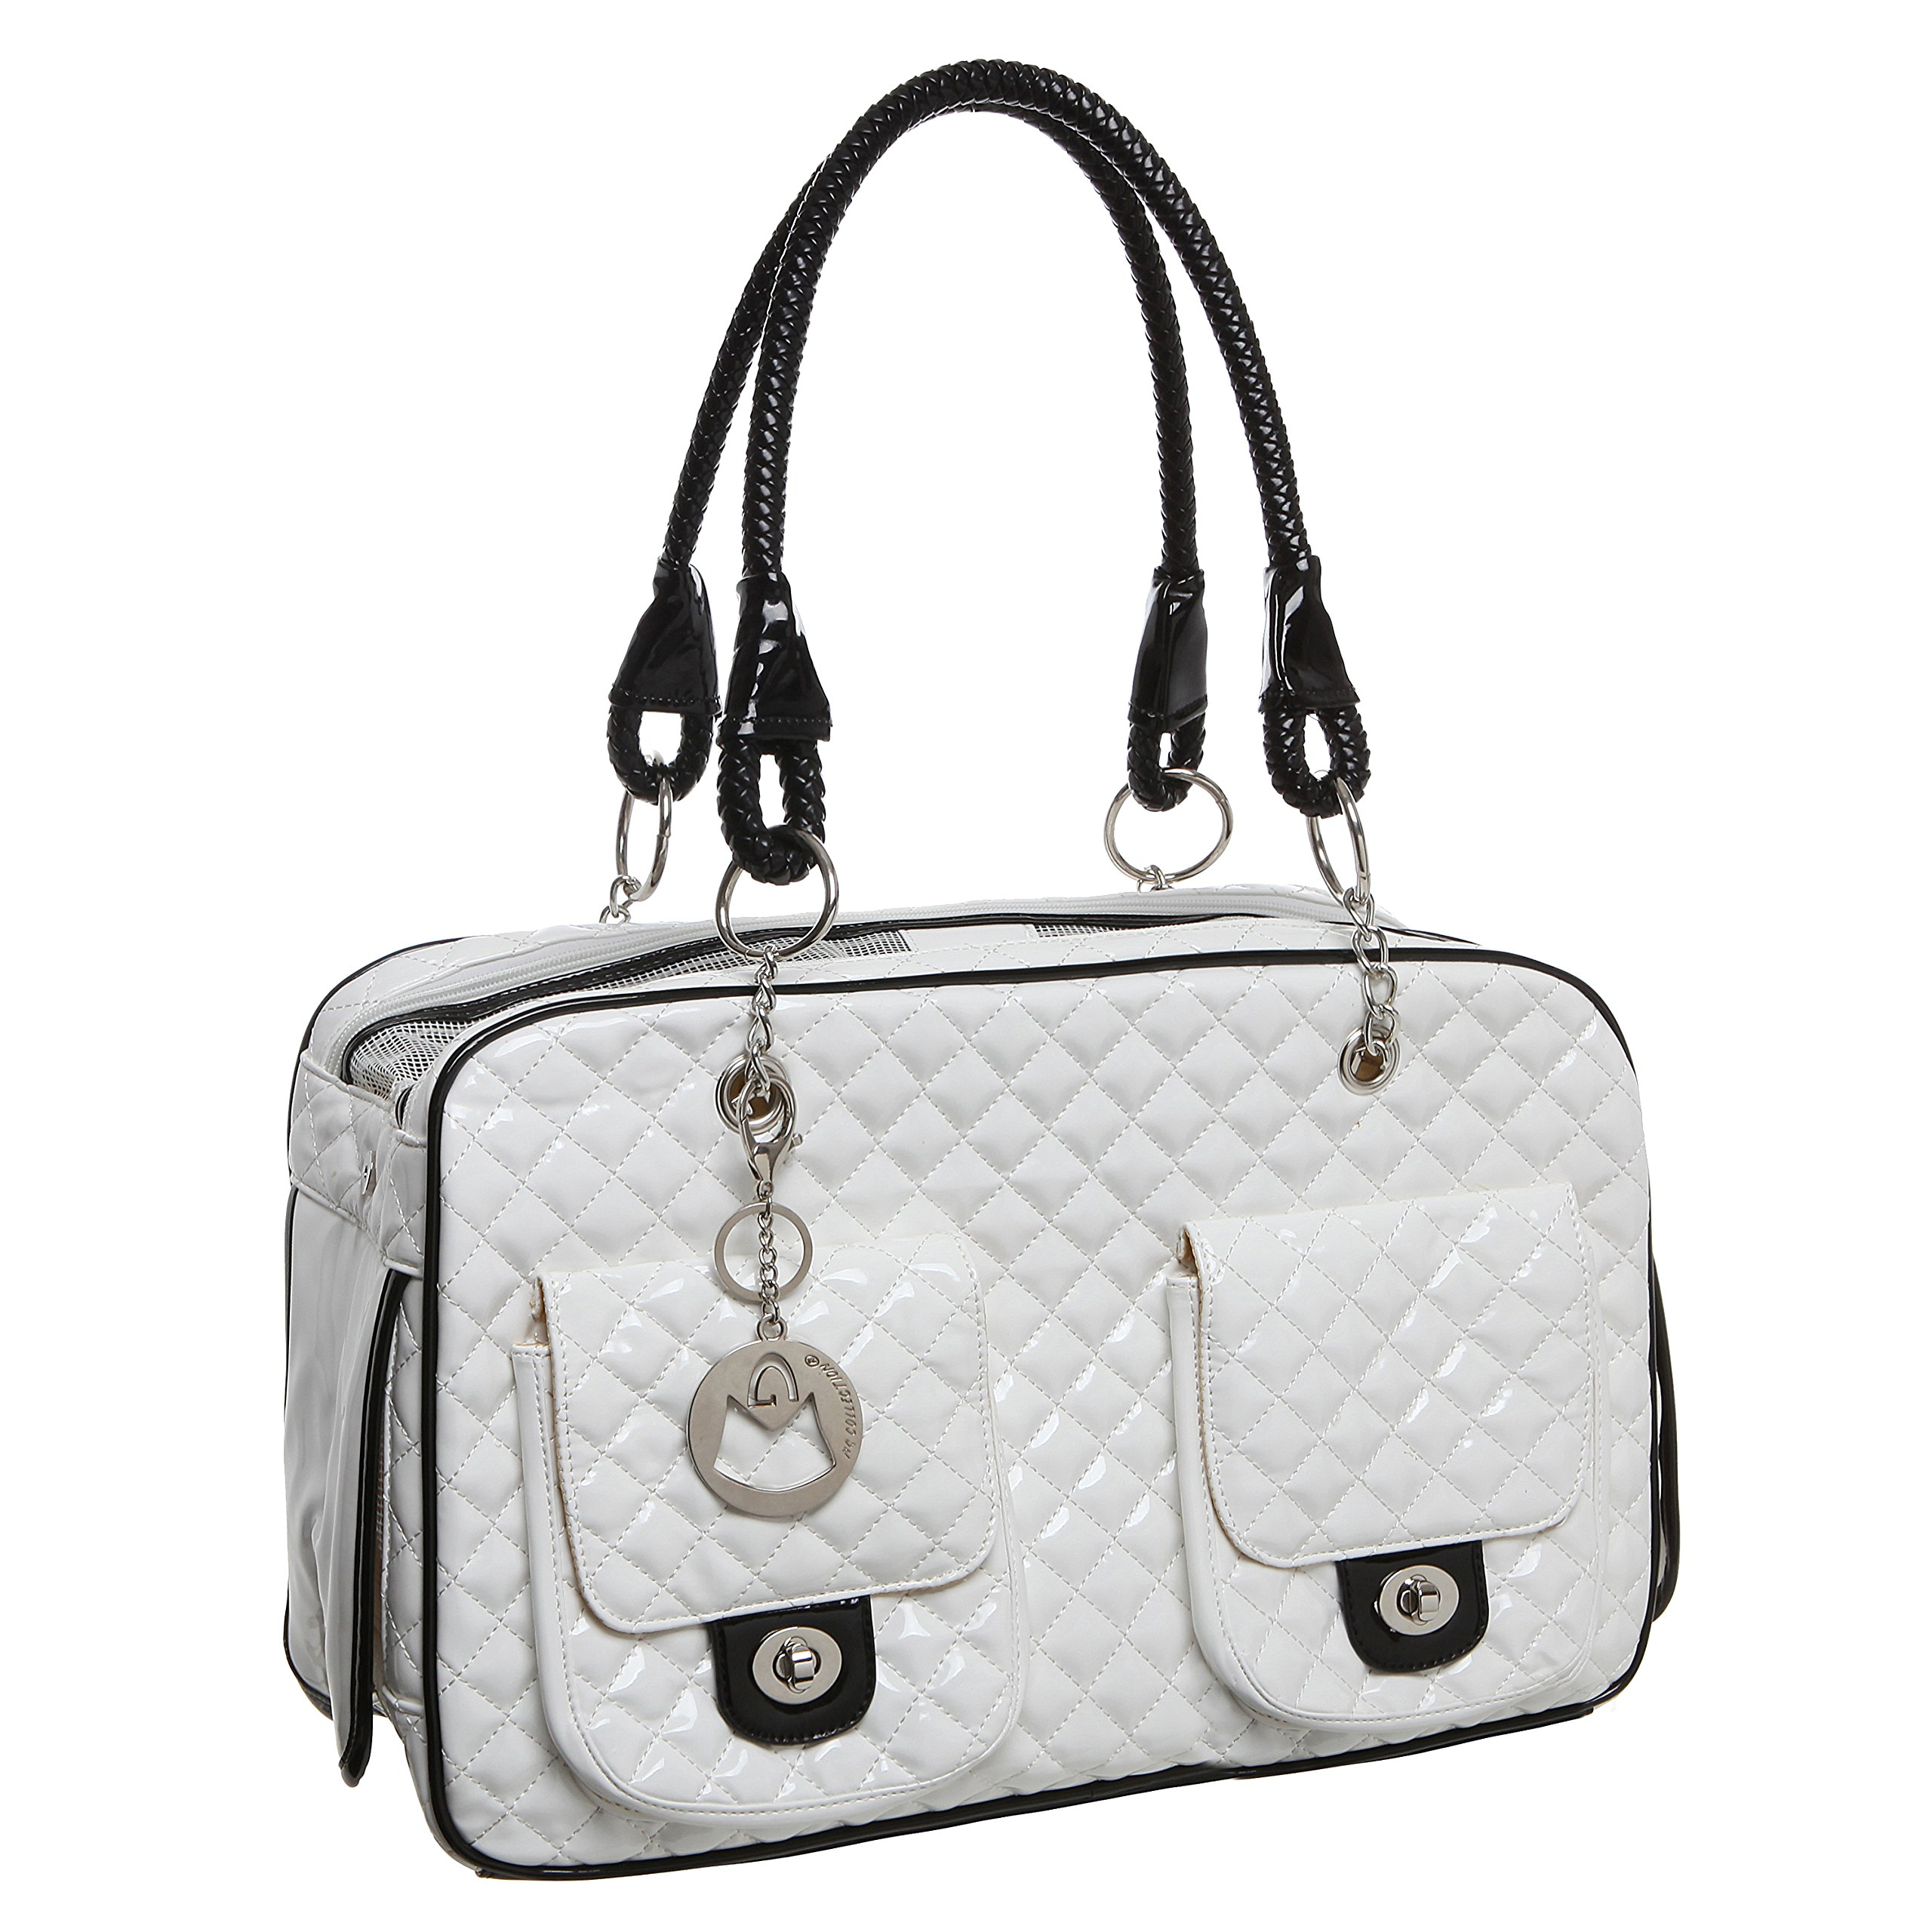 MyGift MG Collection White Quilted Designer Inspired Faux Patent Leather Dog & Cat Pet Carrier Tote Handbag by MyGift